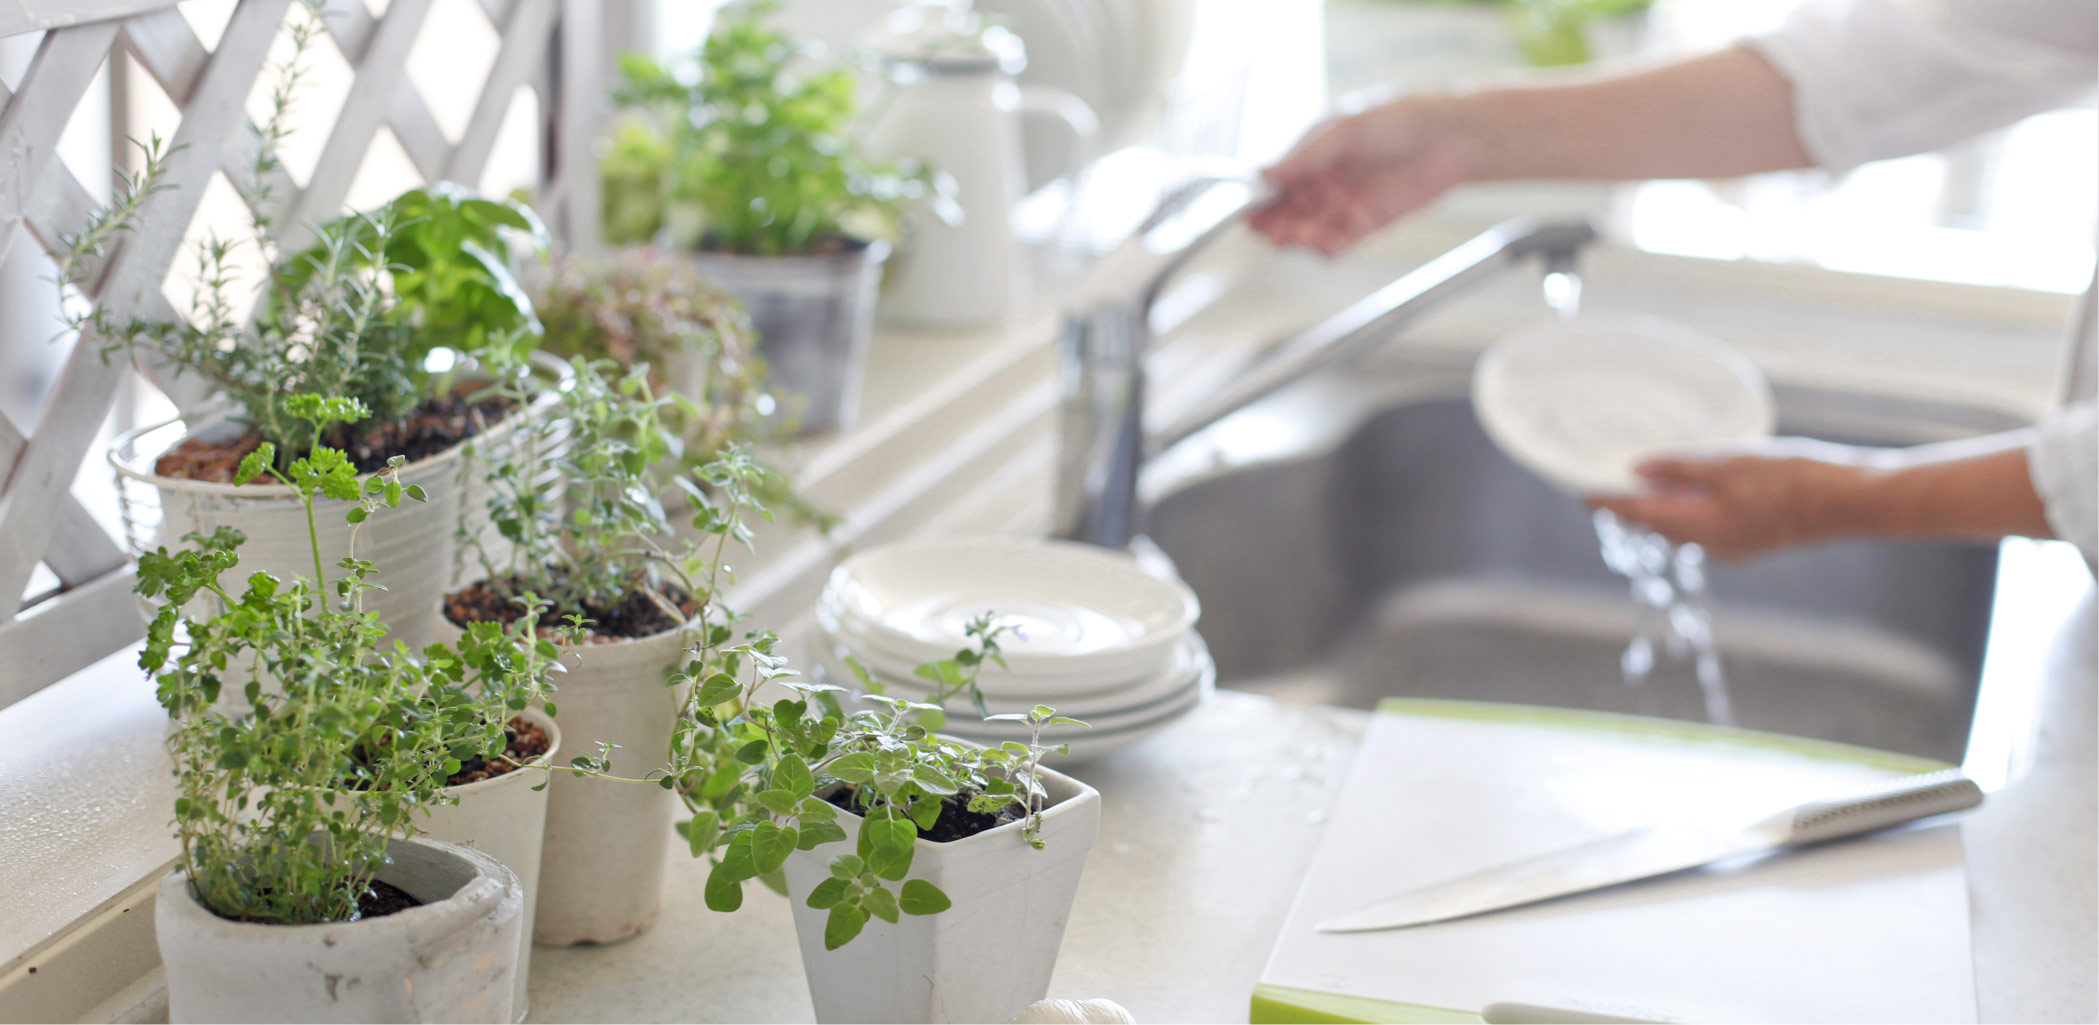 Planting Ideas - Welcome Spring with an Indoor Herb Garden!